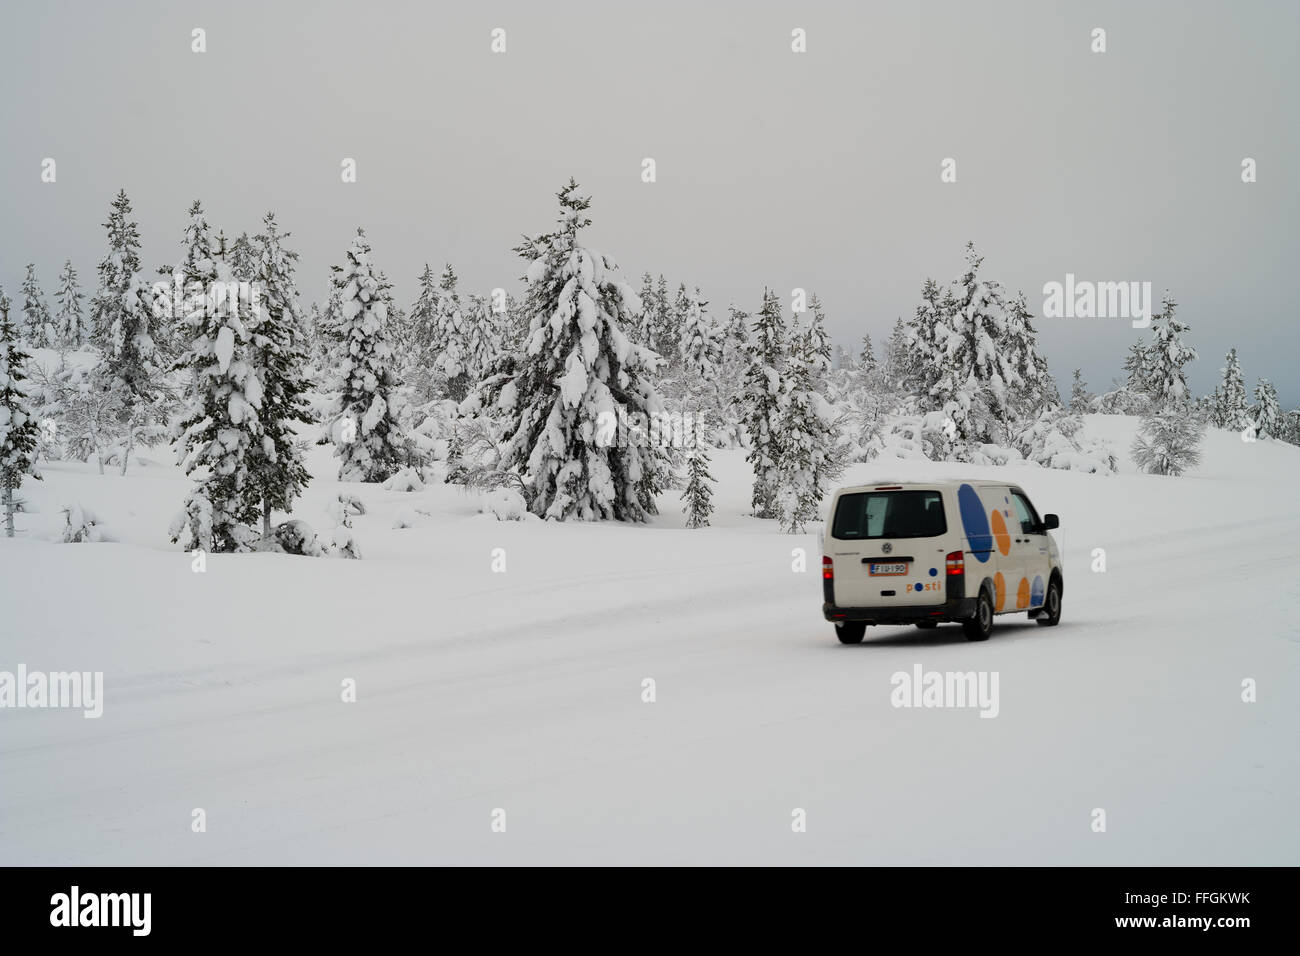 Sodankyla, Lapland, Finland. 11th Feb, 2016. A vehicle of the postal services makes its way across the wintry landscape - Stock Image